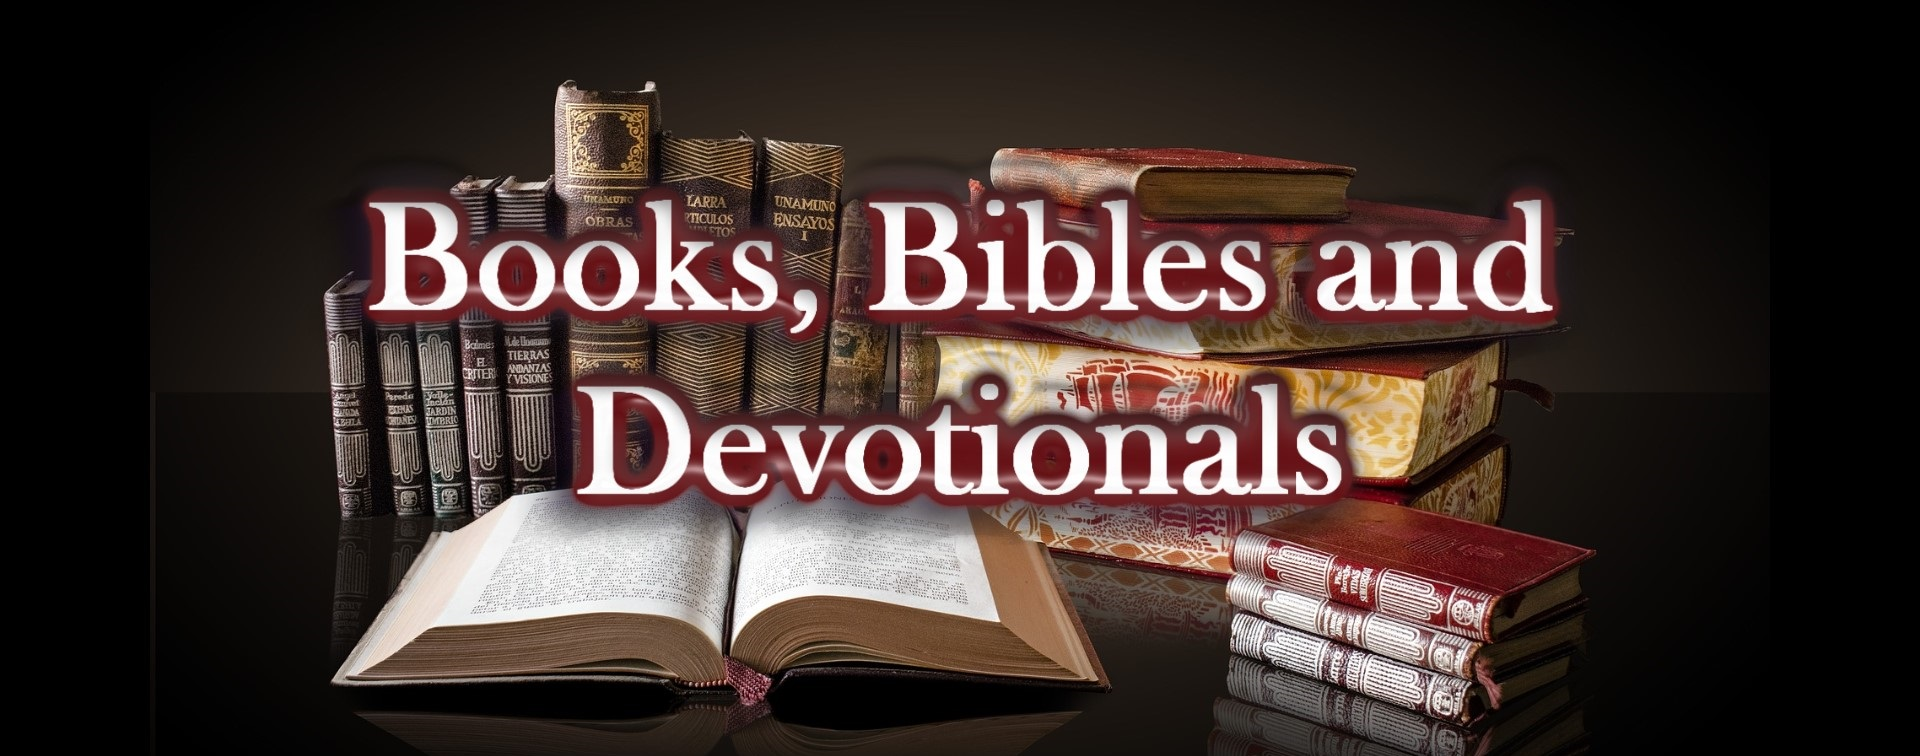 books-bibles-and-devotionals_000000